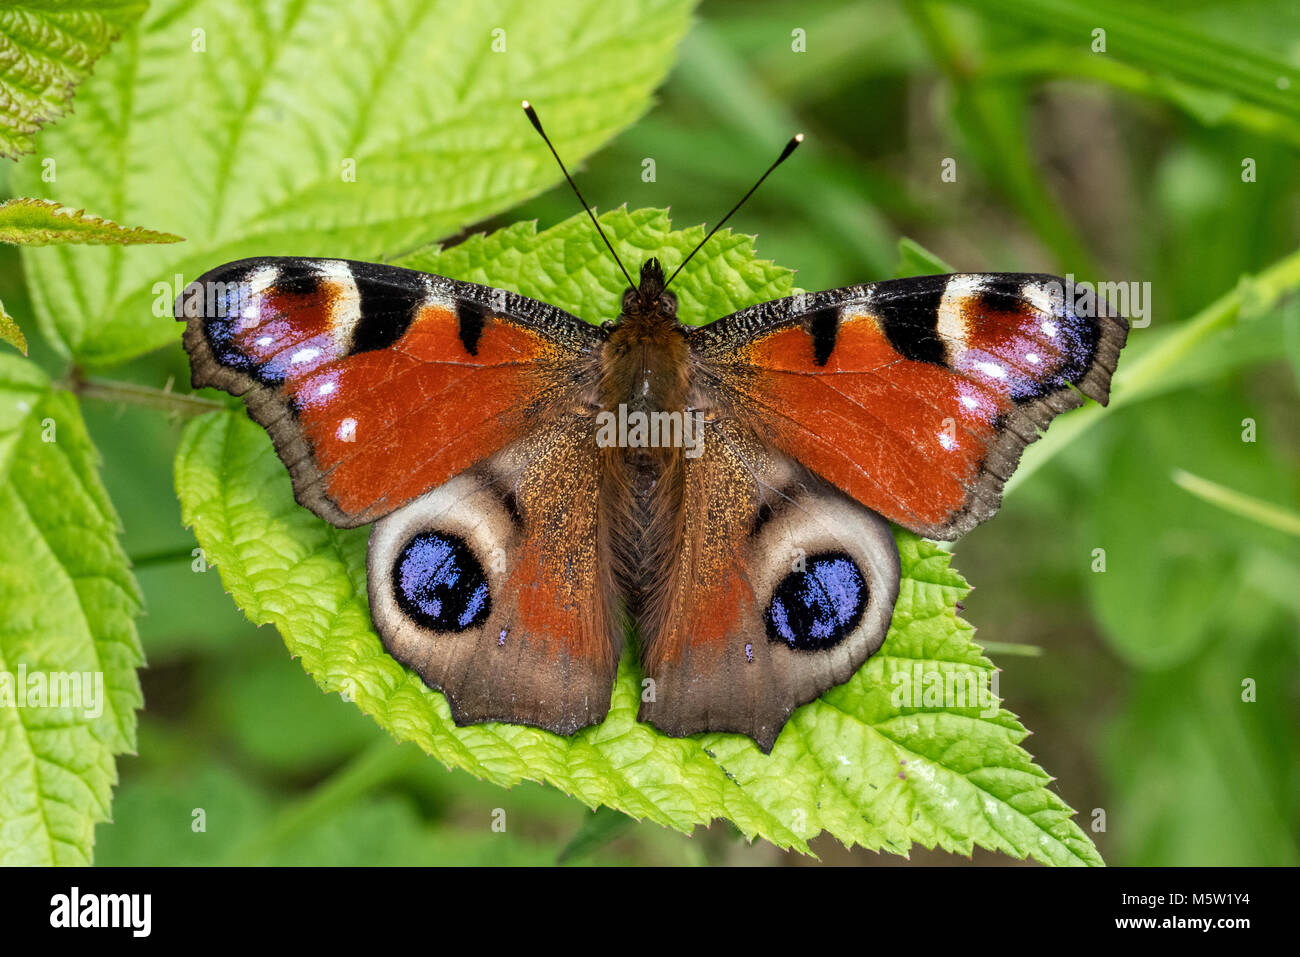 Peacock butterfly sitting on leaf - Stock Image